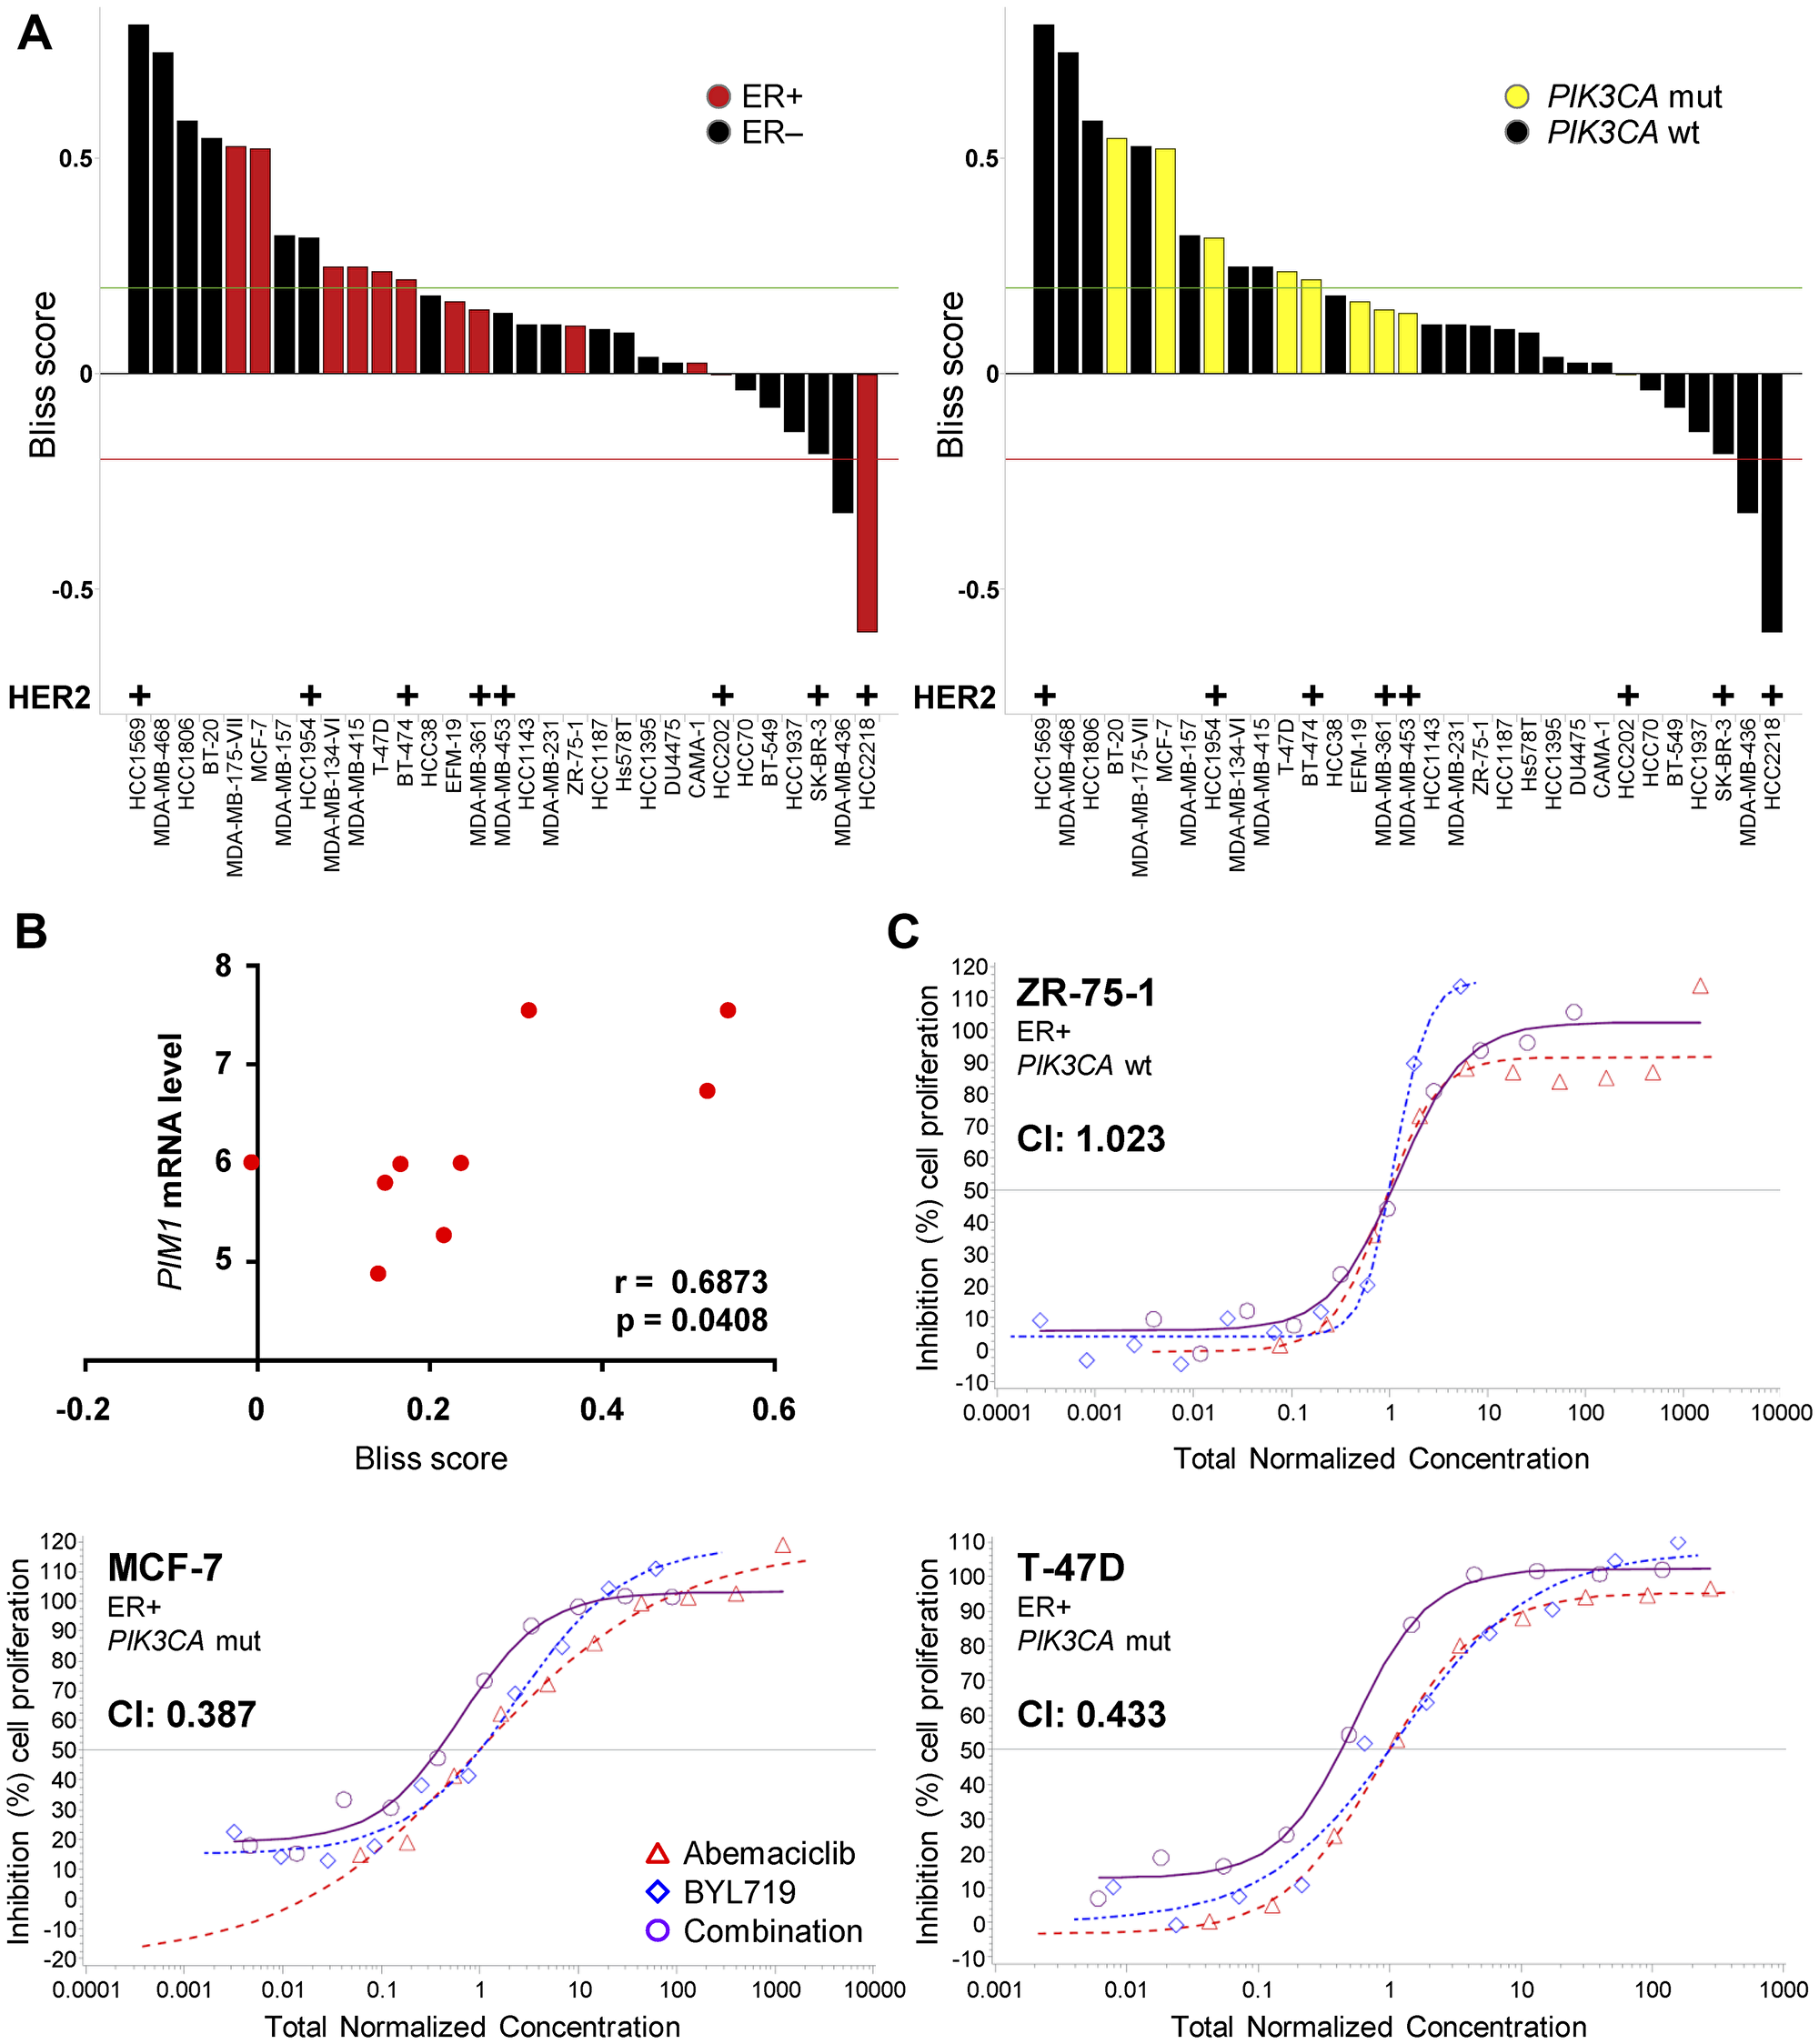 Combination treatment with abemaciclib and BYL719 synergistically inhibits breast cancer cell growth.